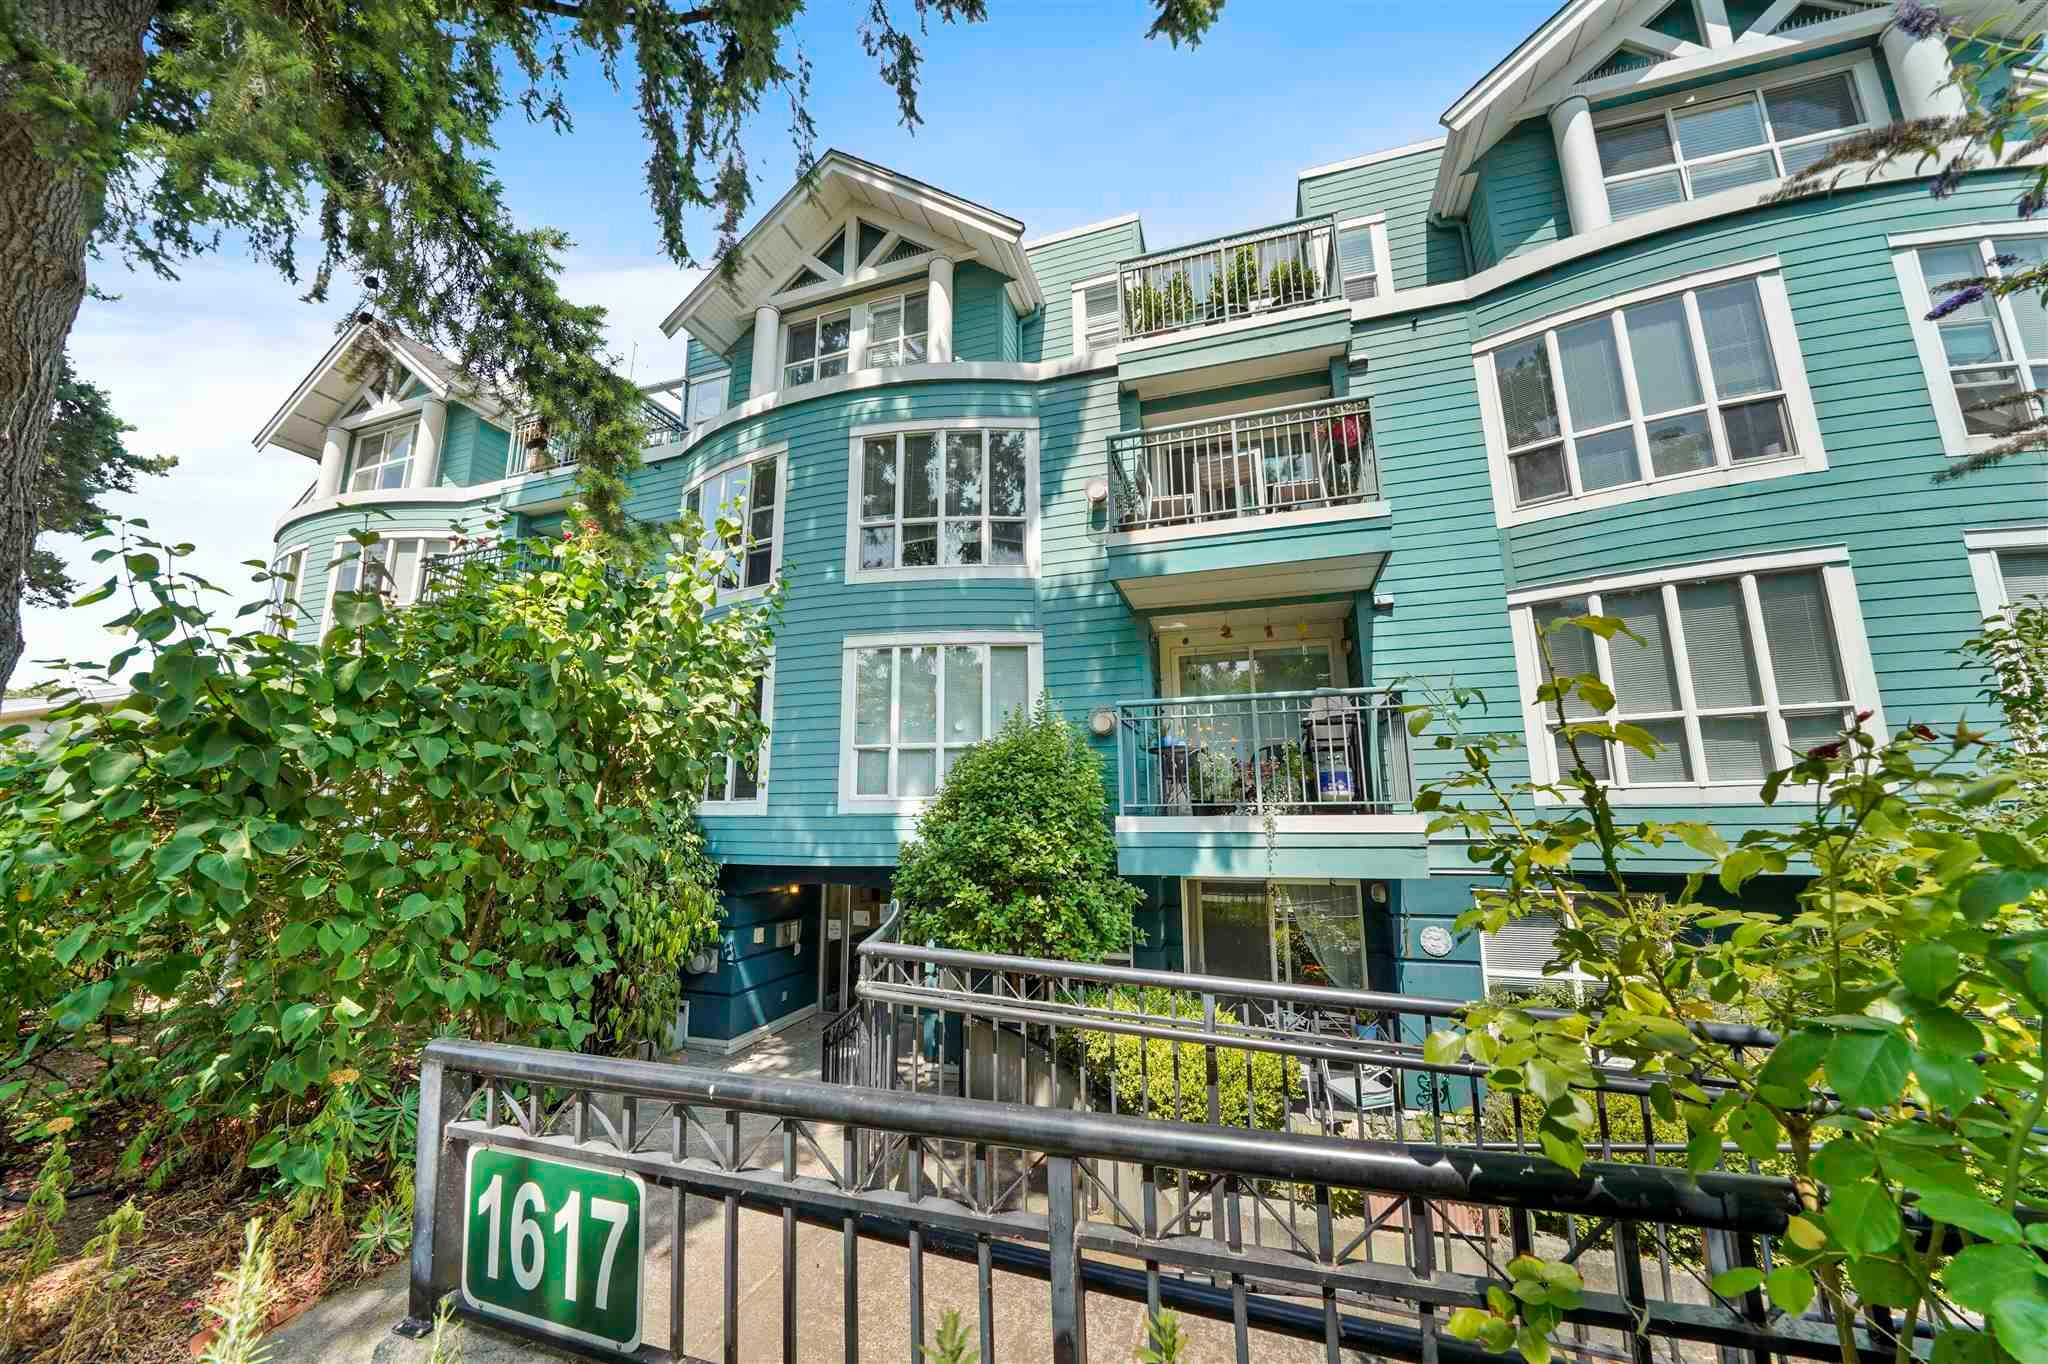 Main Photo: 204 1617 GRANT STREET in Vancouver: Grandview Woodland Condo for sale (Vancouver East)  : MLS®# R2604892